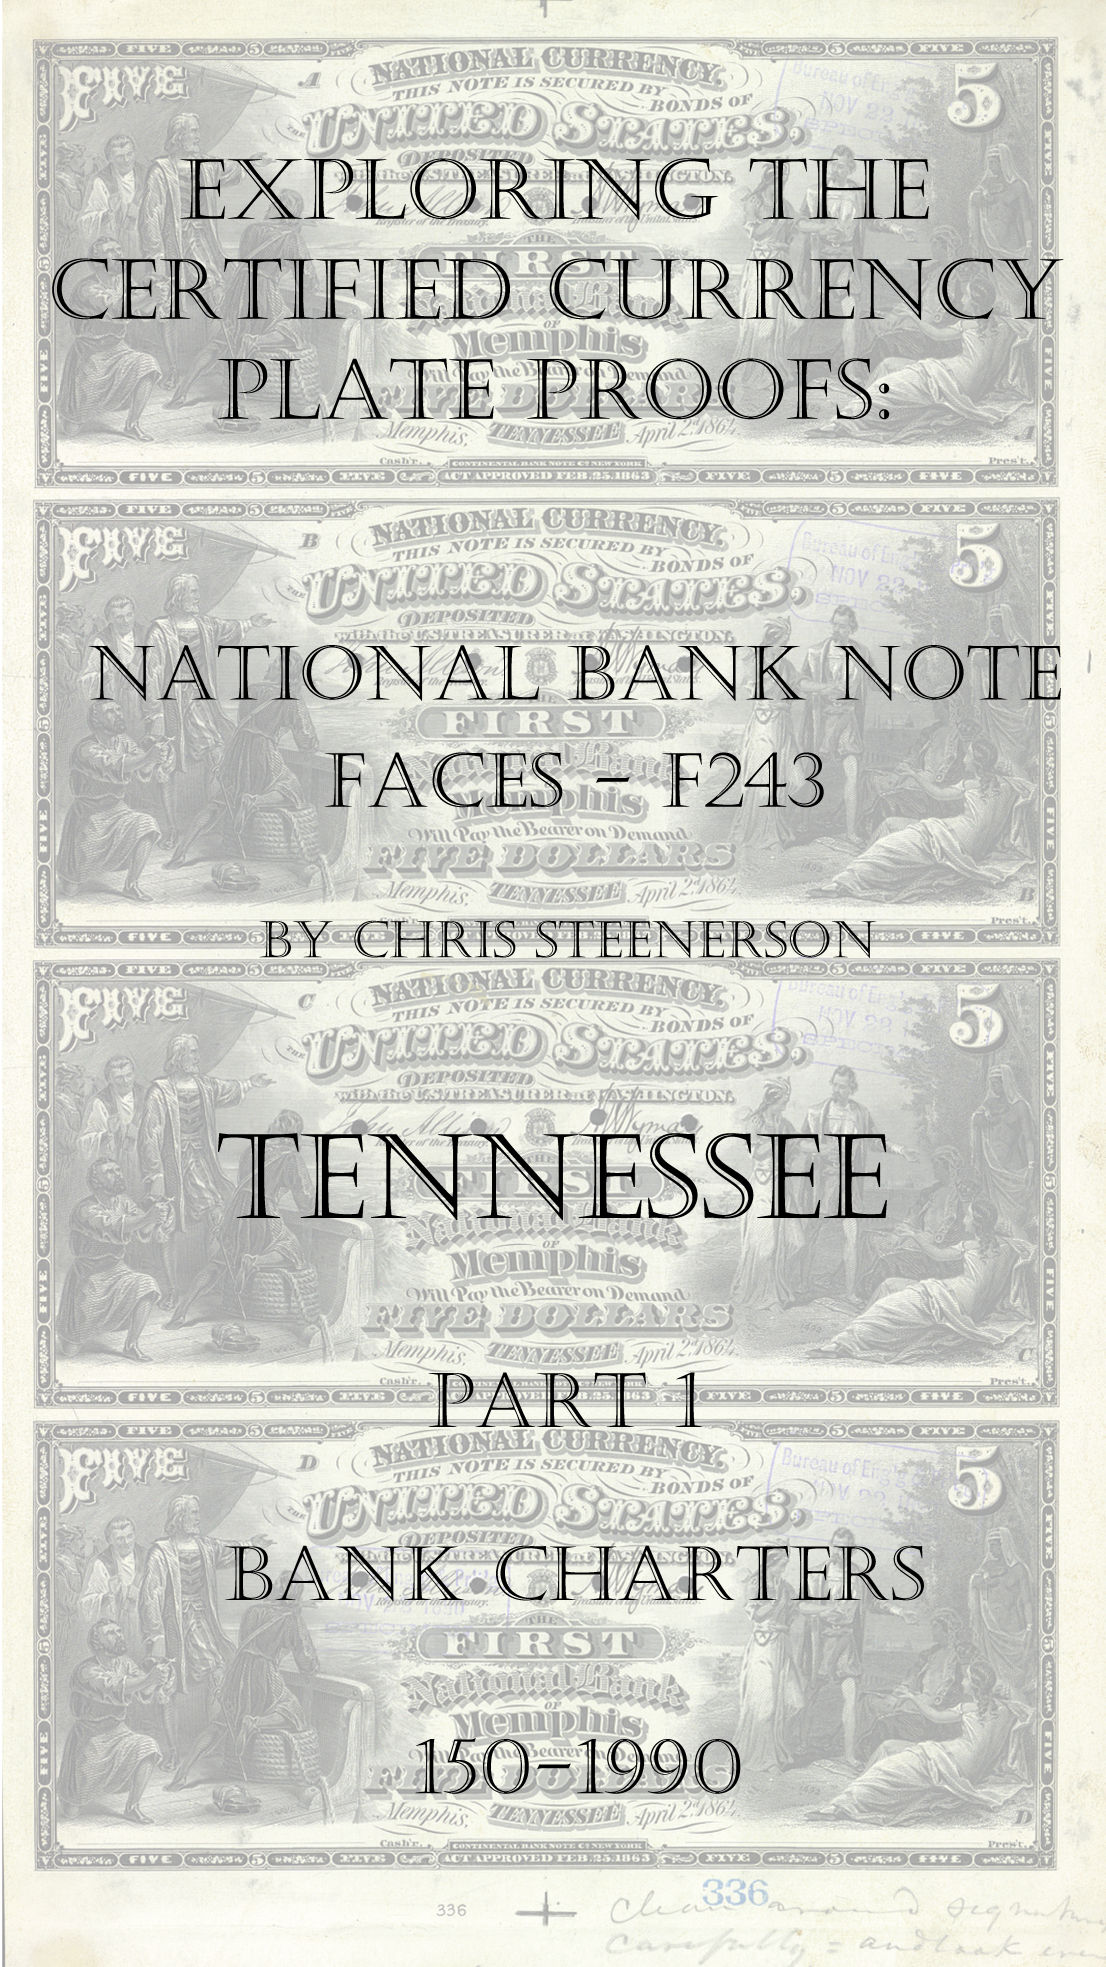 Tennessee National Bank Note Currency Proofs